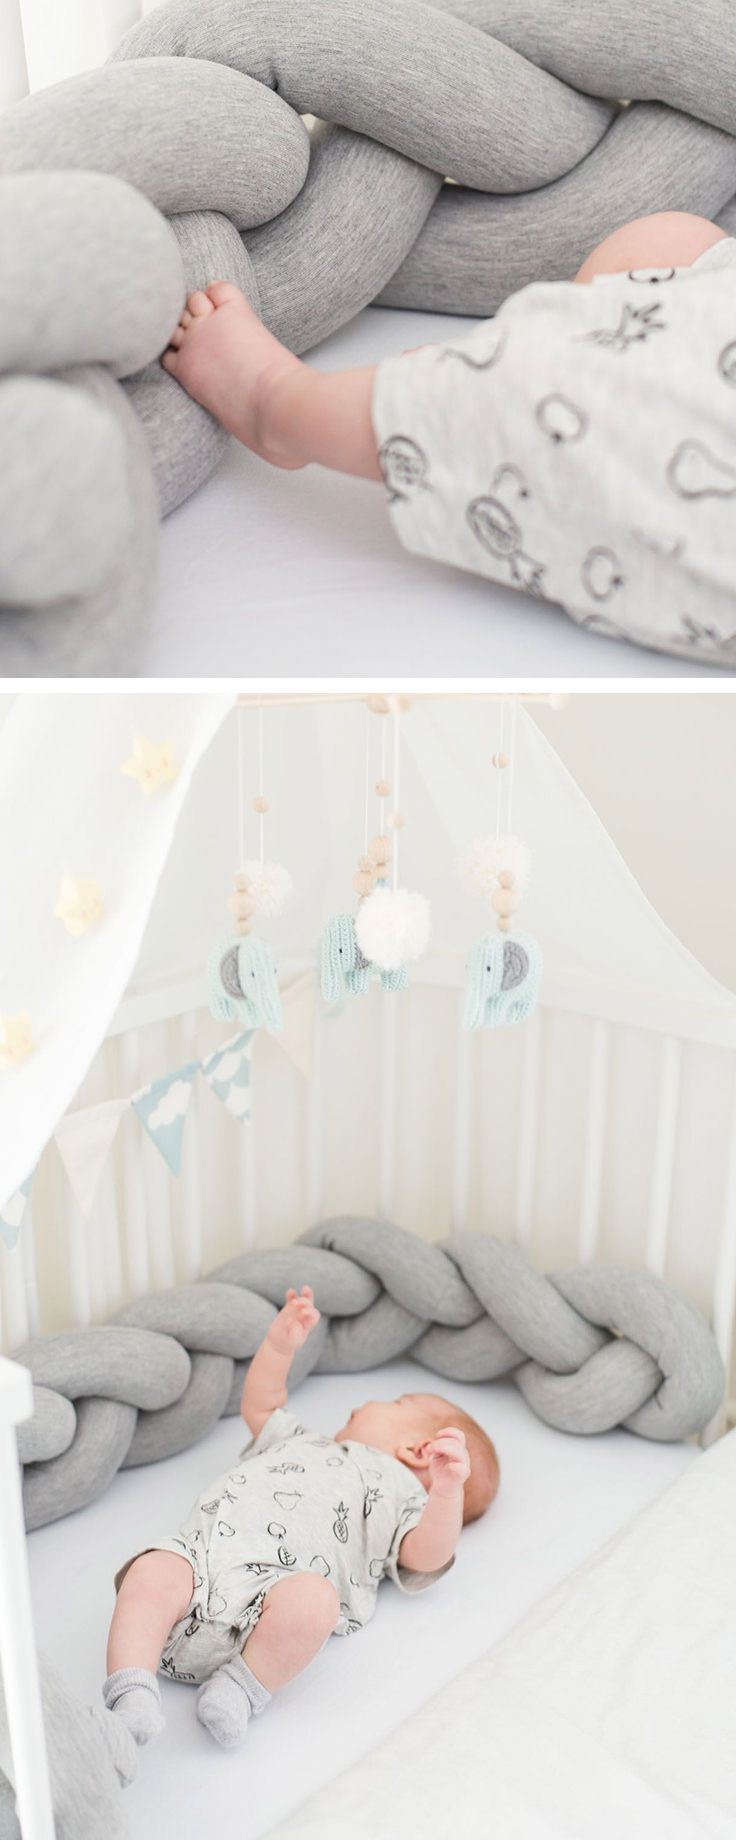 Geflochtene Bettschlange fürs Babybett, Baby Nest, Erstausstattung fürs Baby / braided baby bed made of soft jersey, nursery interior made by Annie und Ava via DaWanda.com